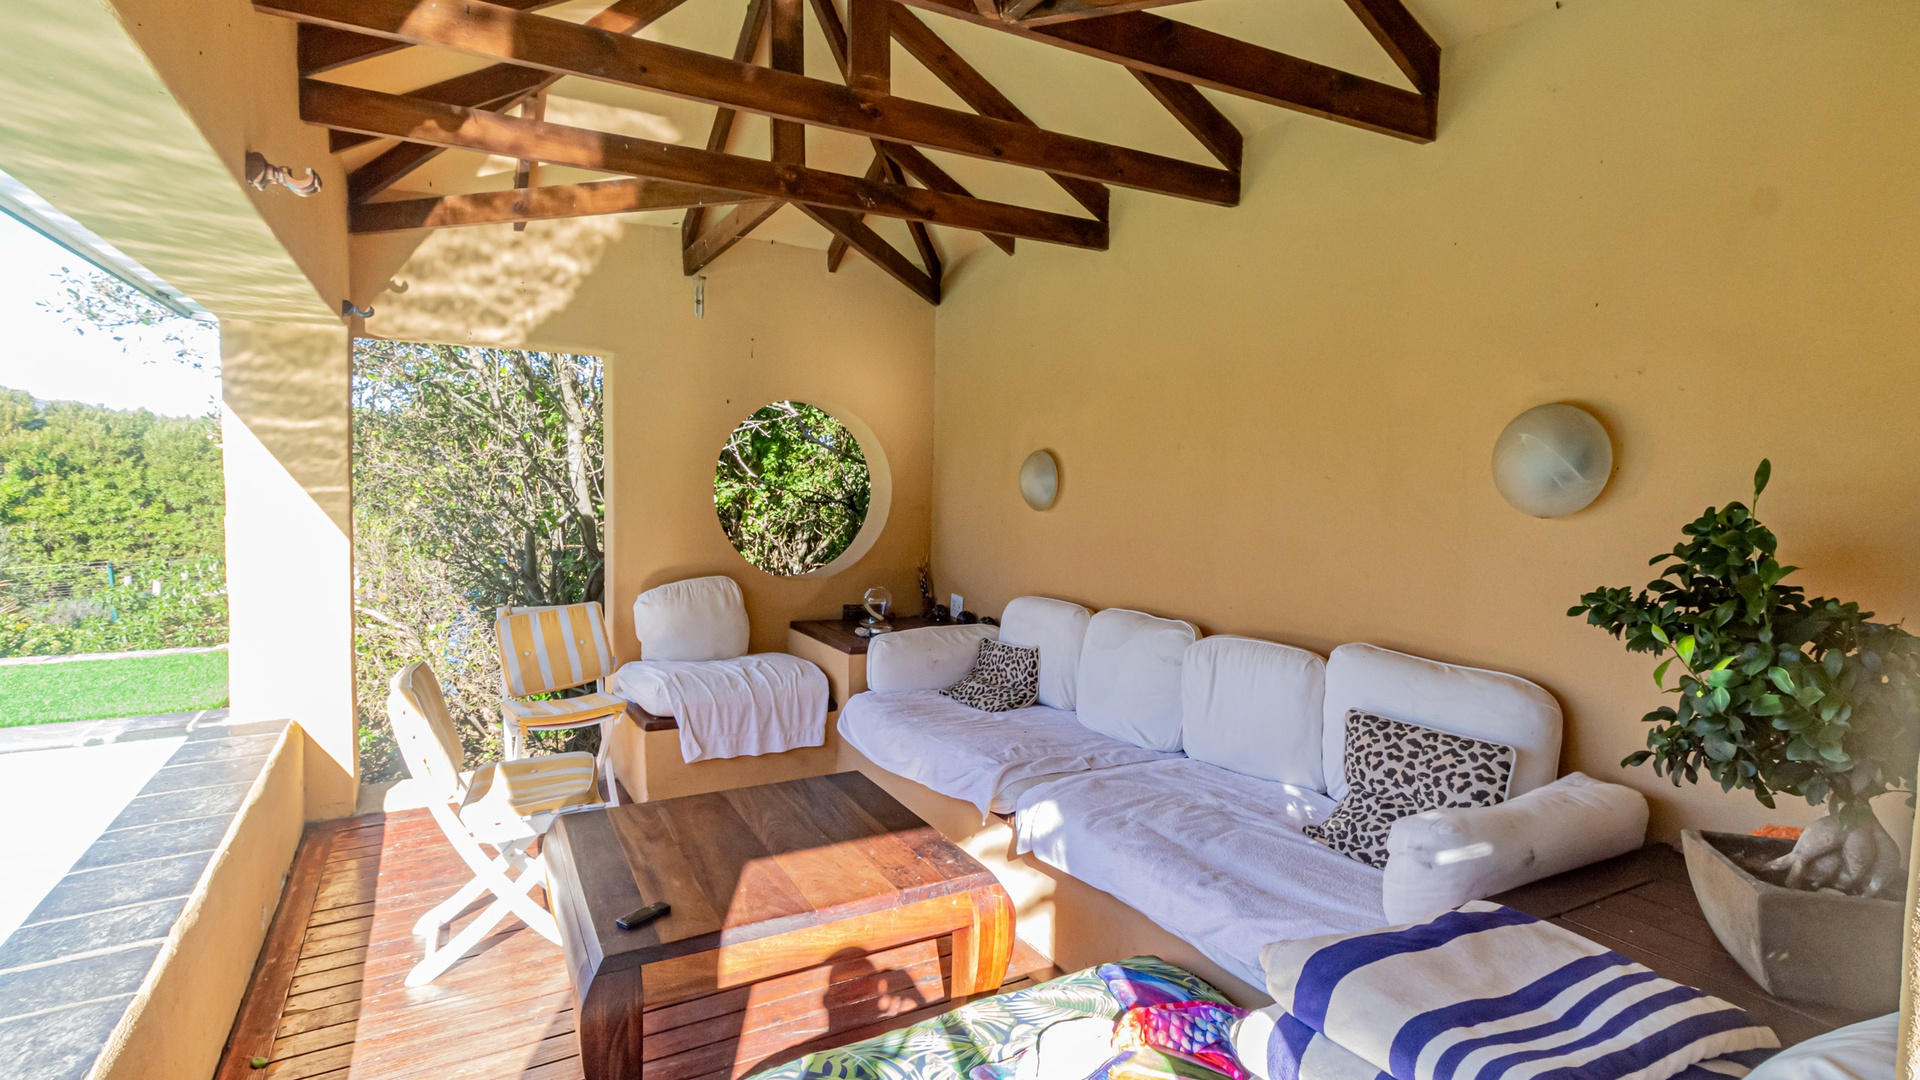 House in Hout Bay - Outside lounging